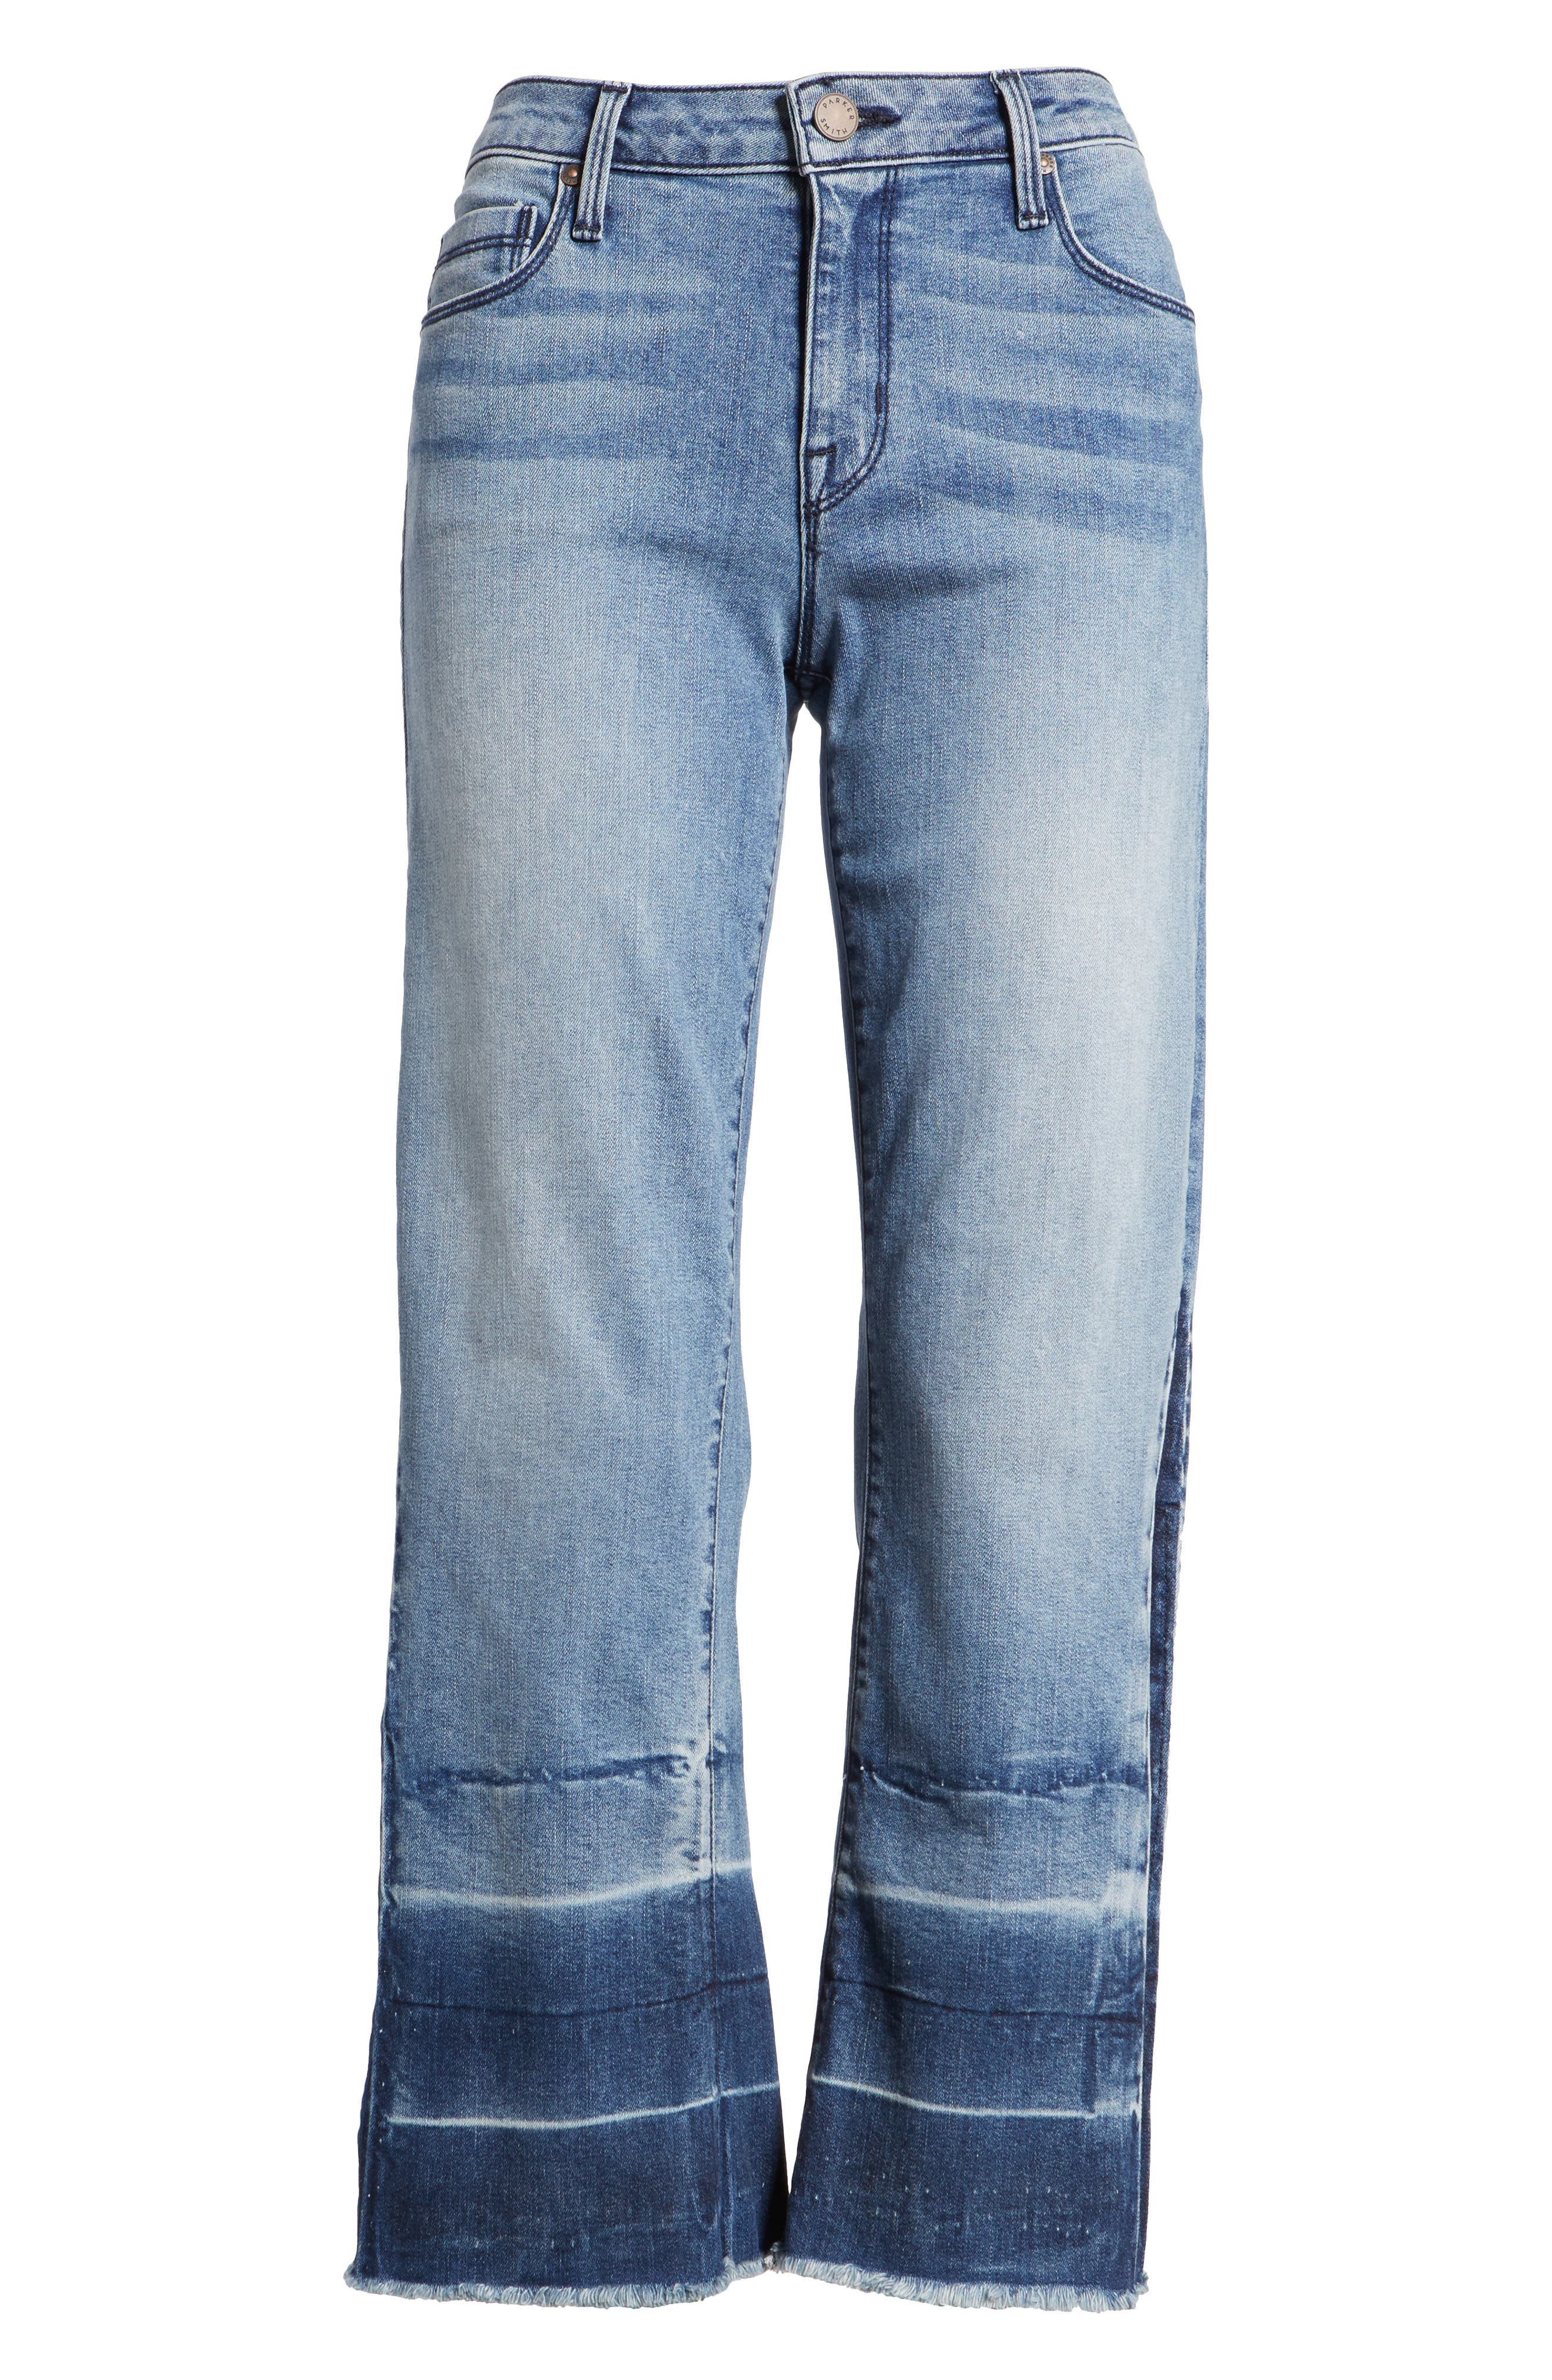 Off-Beat Crop Flare Jeans,                             Alternate thumbnail 7, color,                             424